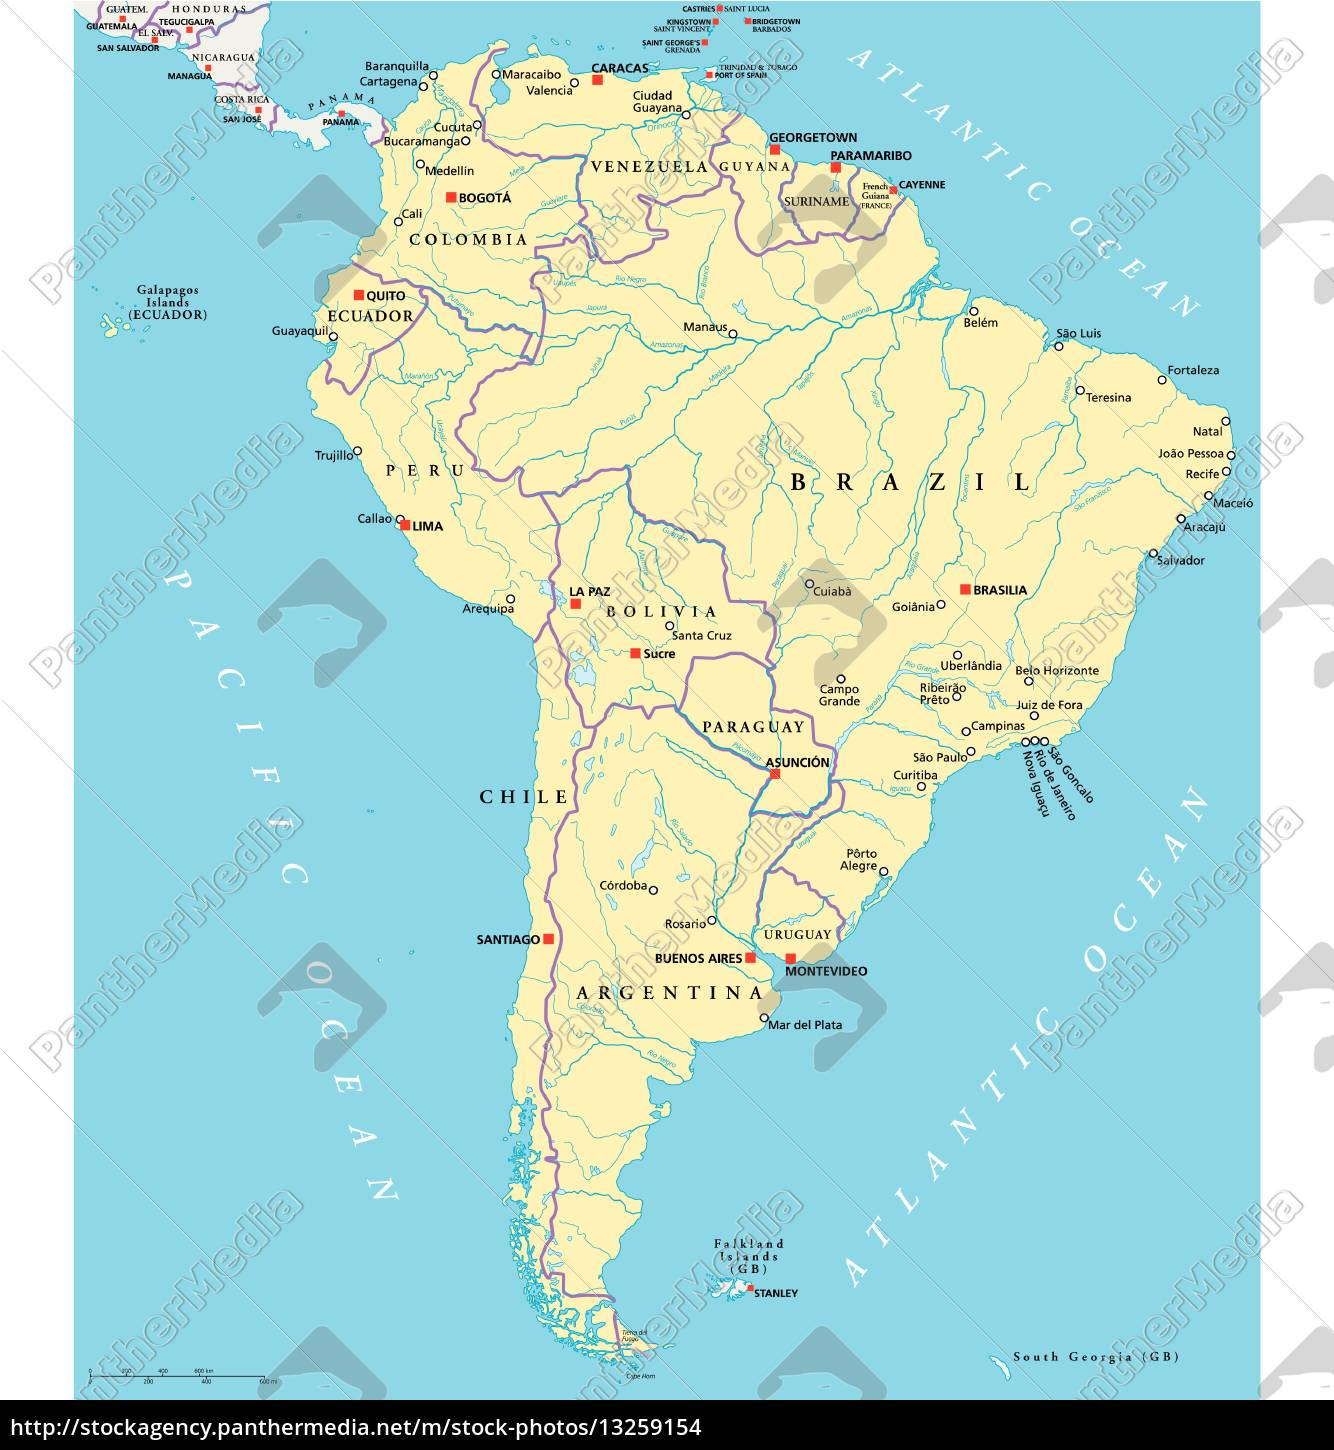 Royalty free vector 13259154 - South America Political Map on map of panama, map of venezuela, map of travel, map of argentina, map of spain, map of playa, map of bolivia, map of colombia, map of buenos aires, map of costa rica, map of africa, map of europe, map of sudamerica, map of las antillas, map of barbados, map of france, map of paraguay, map of peru, map of ecuador, map of australia,